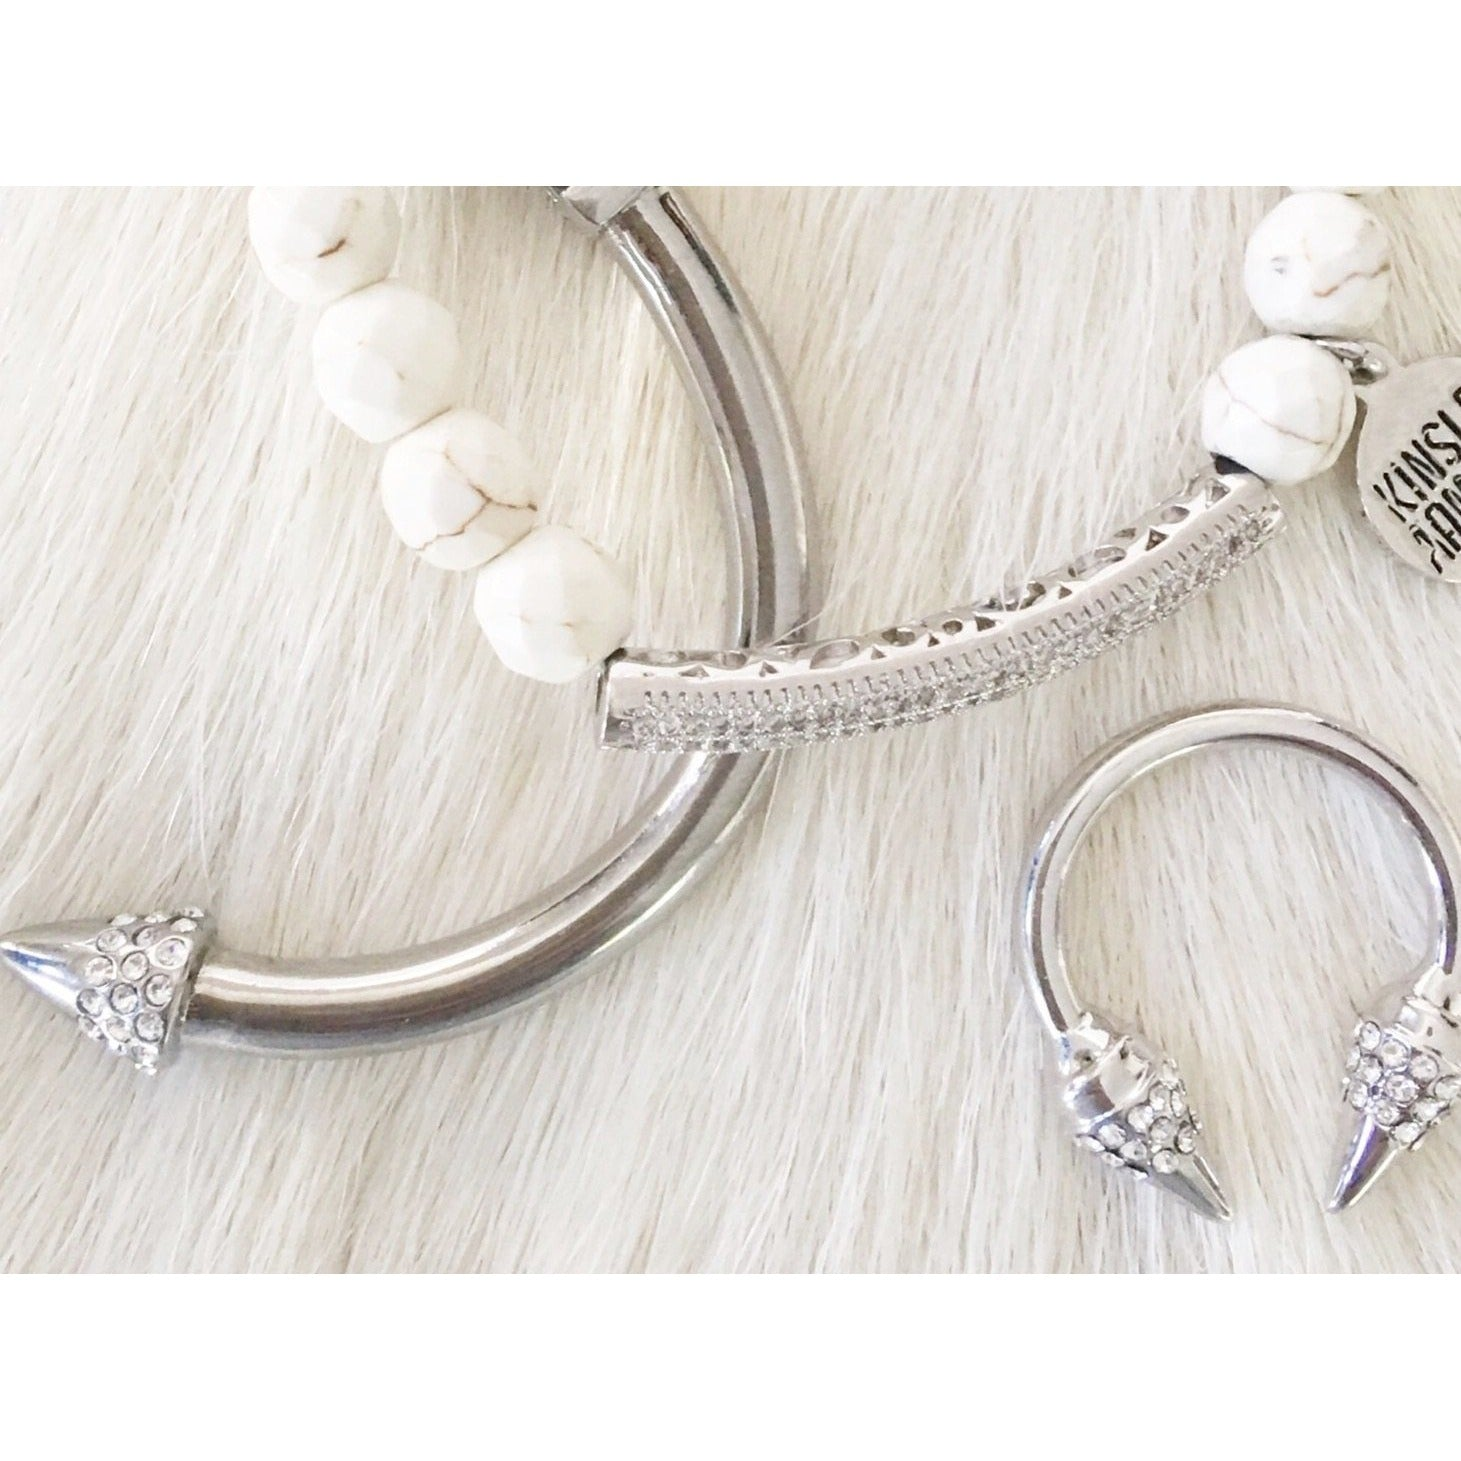 Spike Collection Silver Bling Bracelet - Glamco Boutique